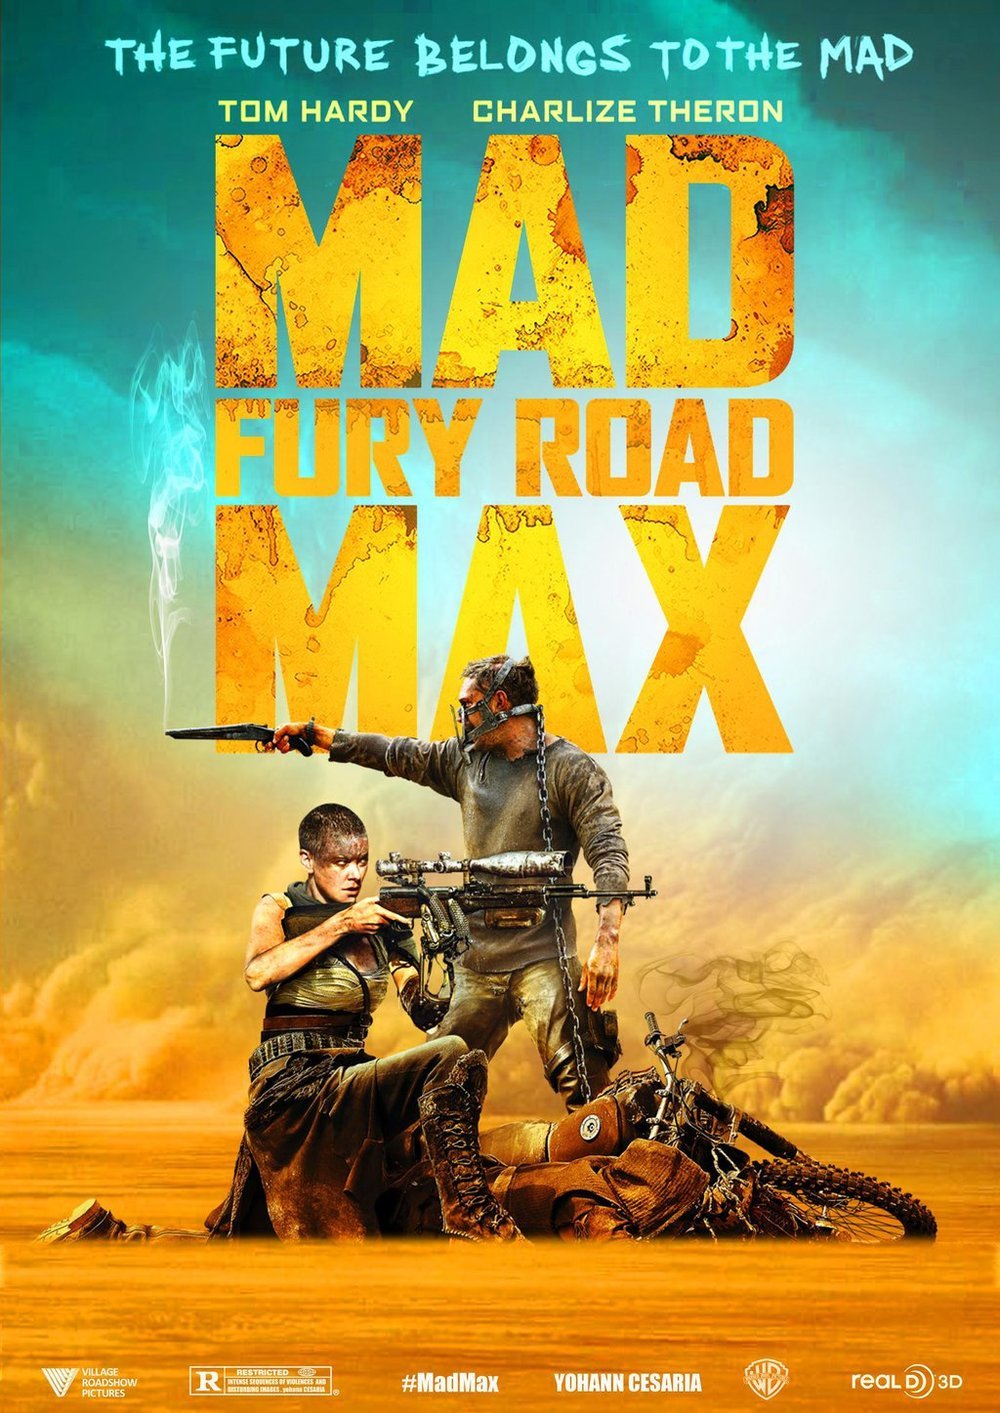 Mad Max: Fury Road - Release Date: 2015Rating: REmi Rating: 9.5/10Fury Road is like fine wine. The more time that passes, the more I enjoy the film. Set in a semi-post apocalyptic world where civilization has collapsed, Max Rockatansky aka Mad Max comes along side the most BA chick of the decade: Imperator Furiosa to help save the despot's 5 wives. In their rollercoaster of an escape you will fall in love with Charlize Theron and her portrayal of Furiosa. Moreover, you might be so hooked that you'll go and watch the original Mad Max films.